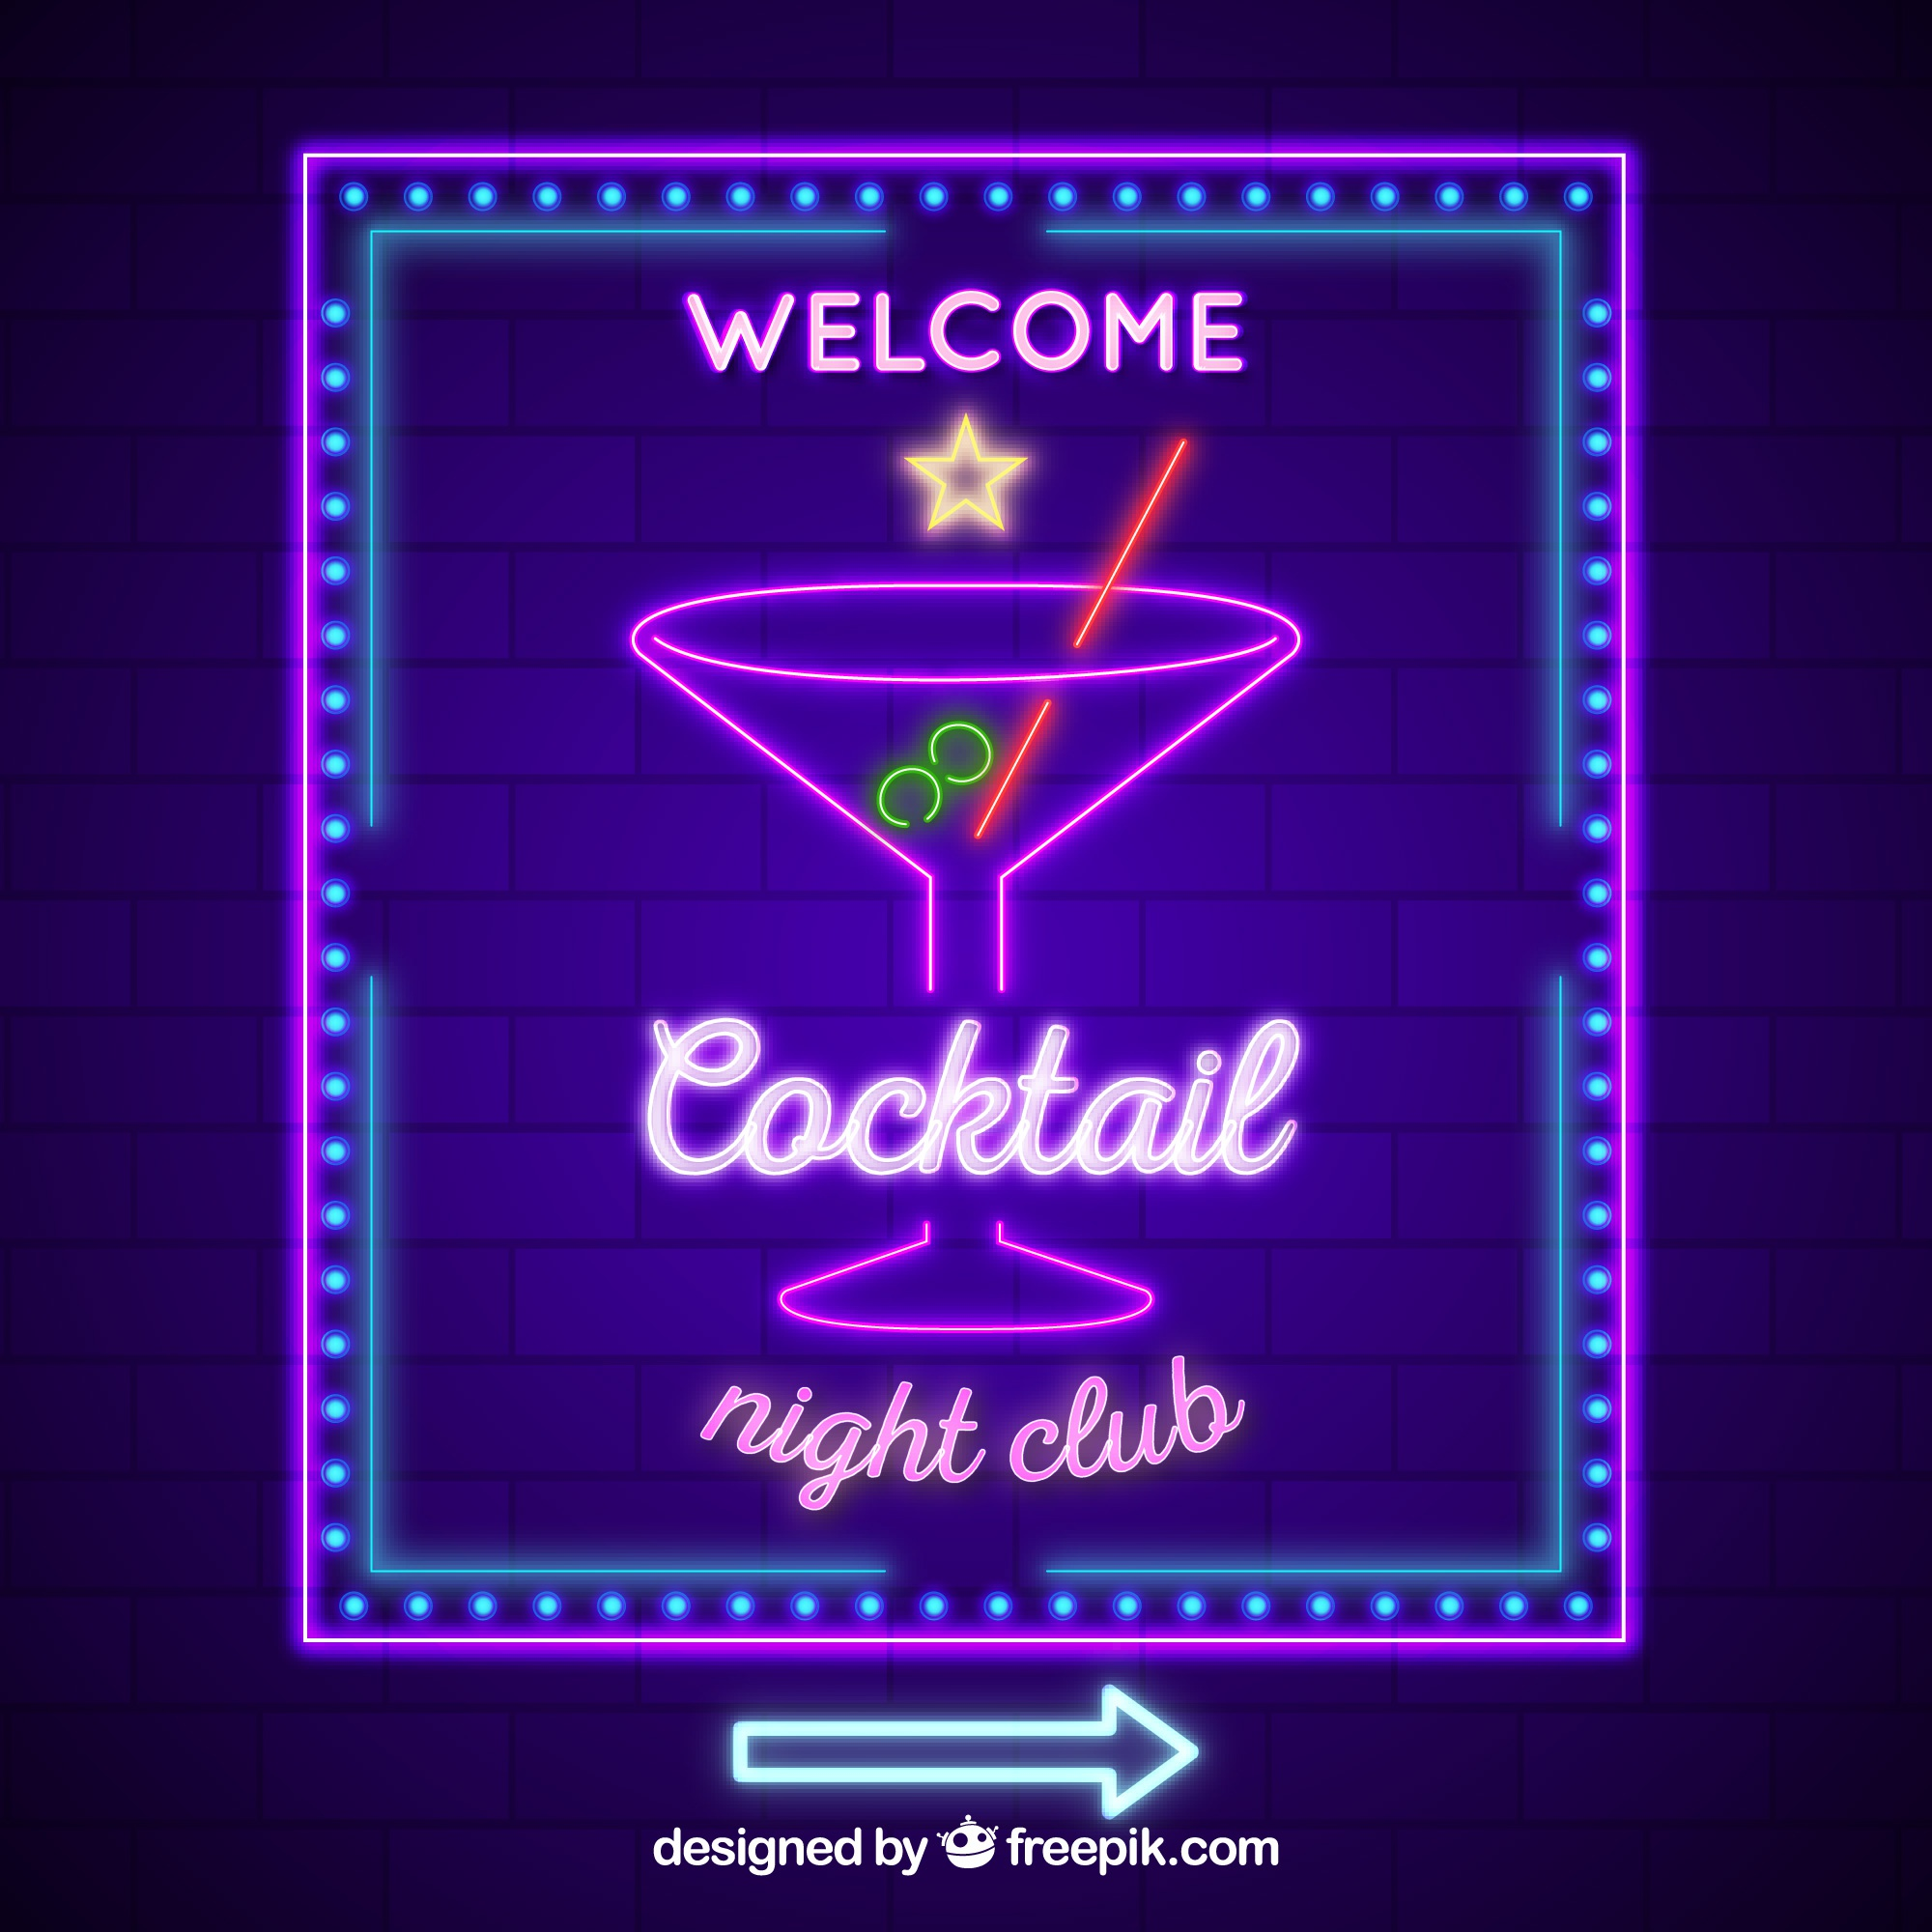 Neon sign with cocktail shape